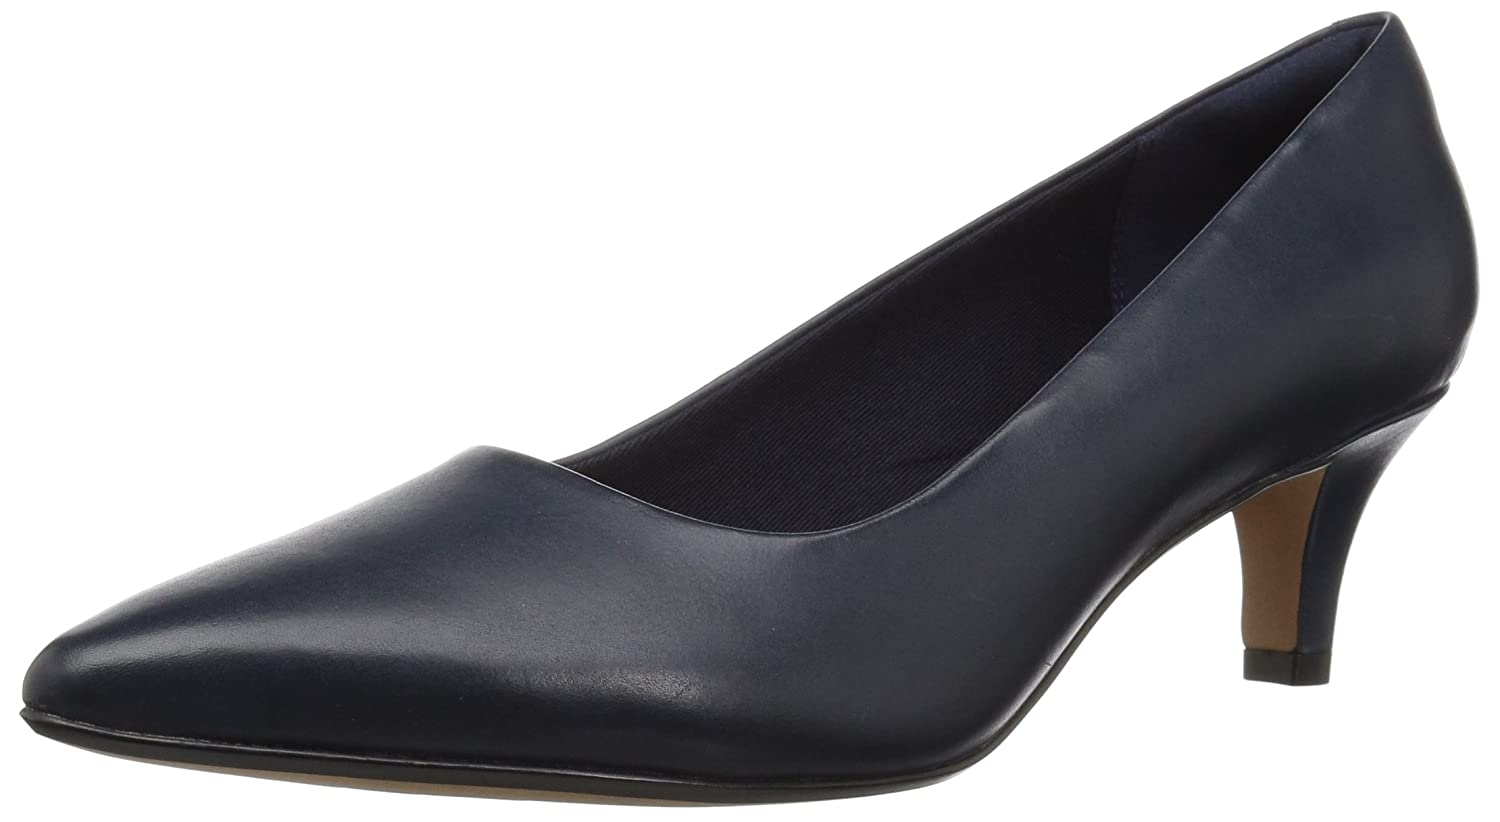 CLARKS Women's Linvale Jerica Pump B078GB71PM 050 M US|Navy Leather